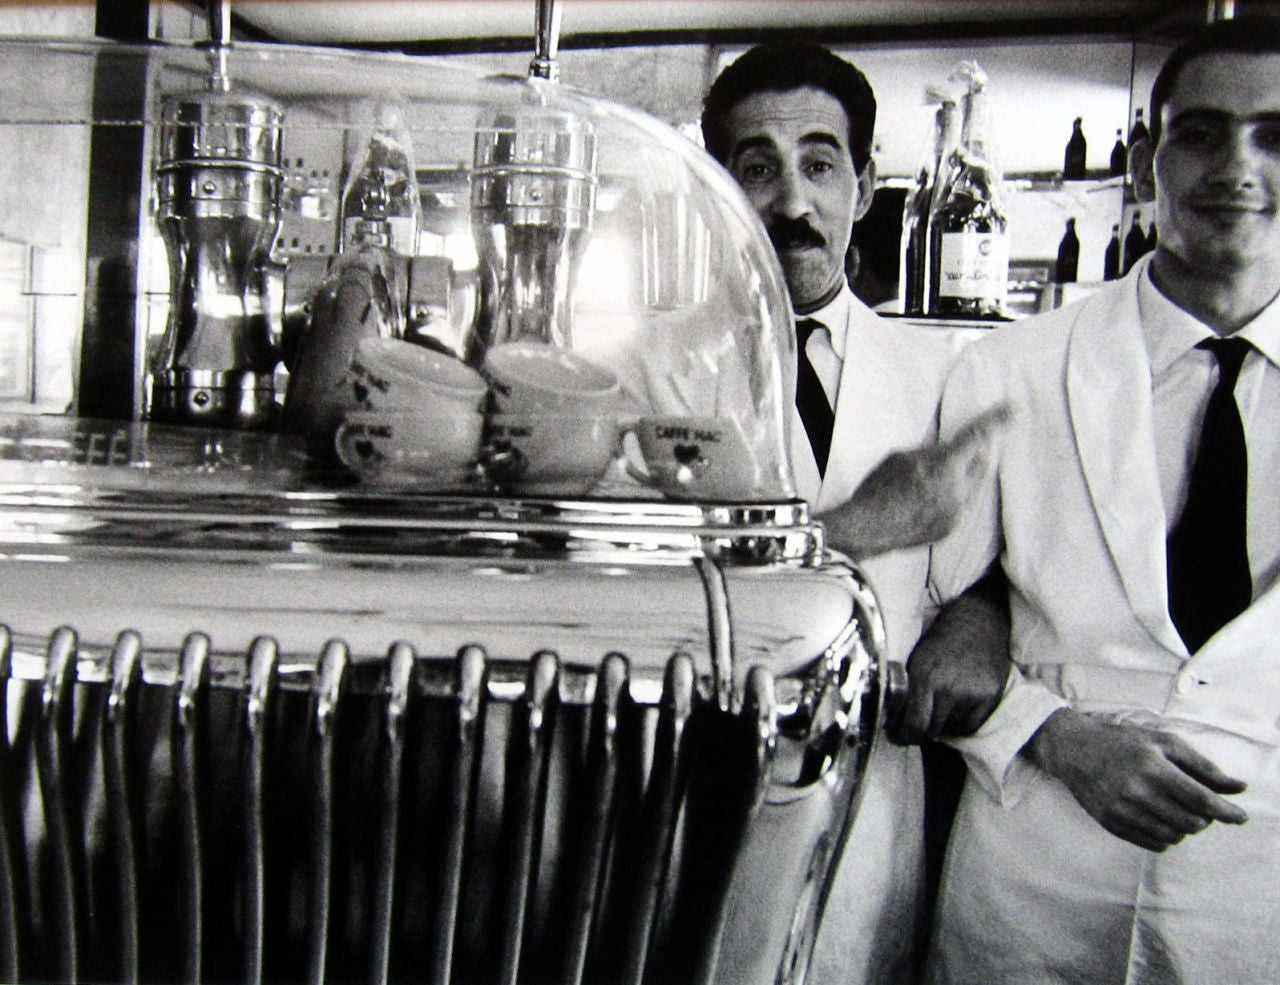 Two Waiters in Café, Rome - Photograph by William Klein